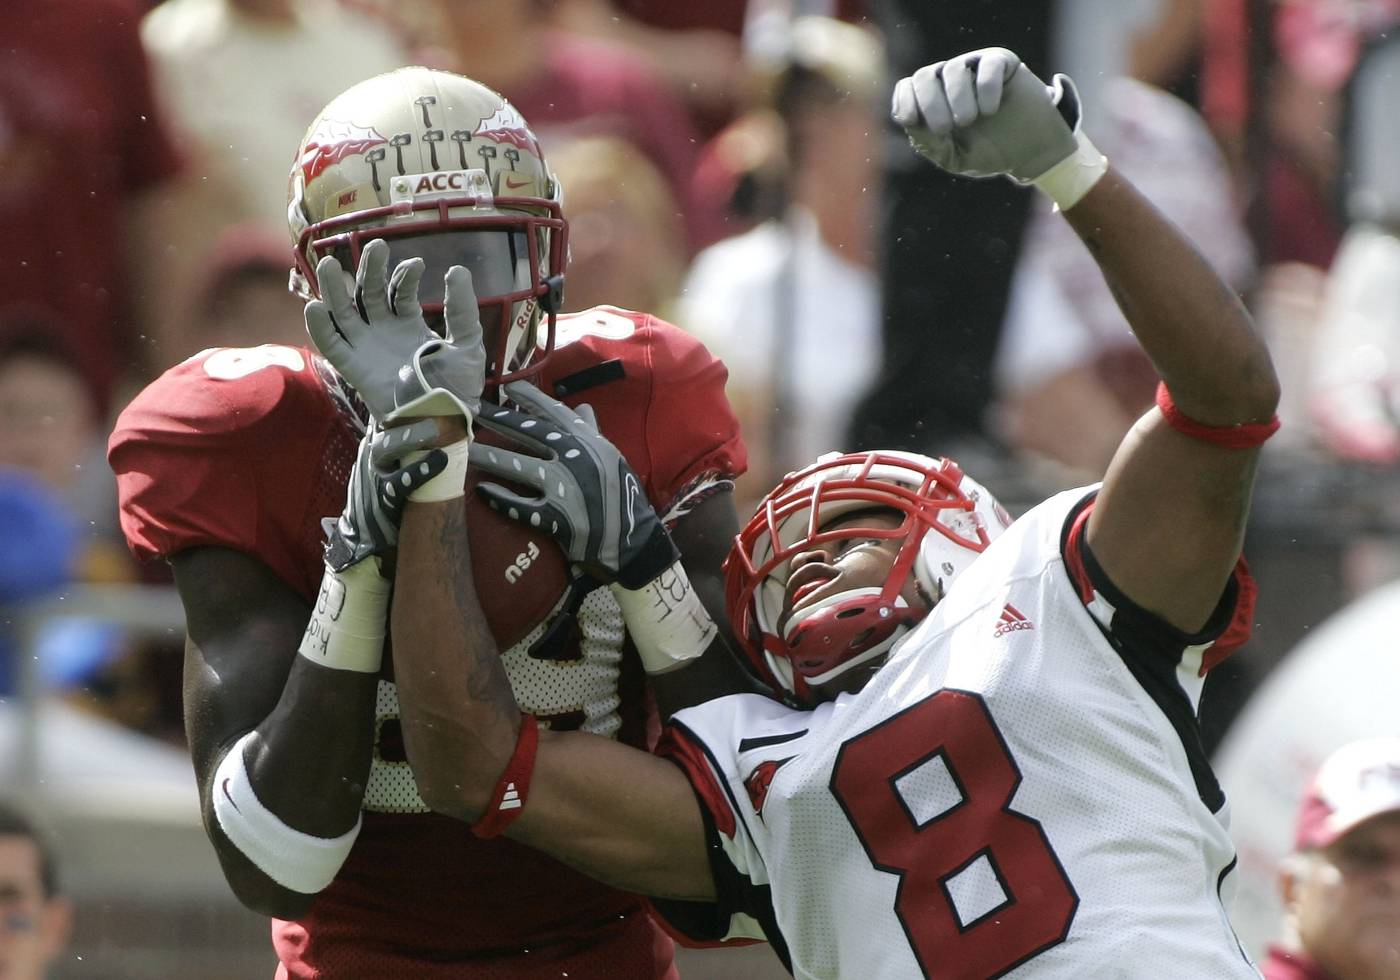 Florida State receiver Greg Carr, left, makes a first quarter catch as North Carolina State's Jimmie Sutton, right, attempts to defend. (AP Photo/Phil Coale)